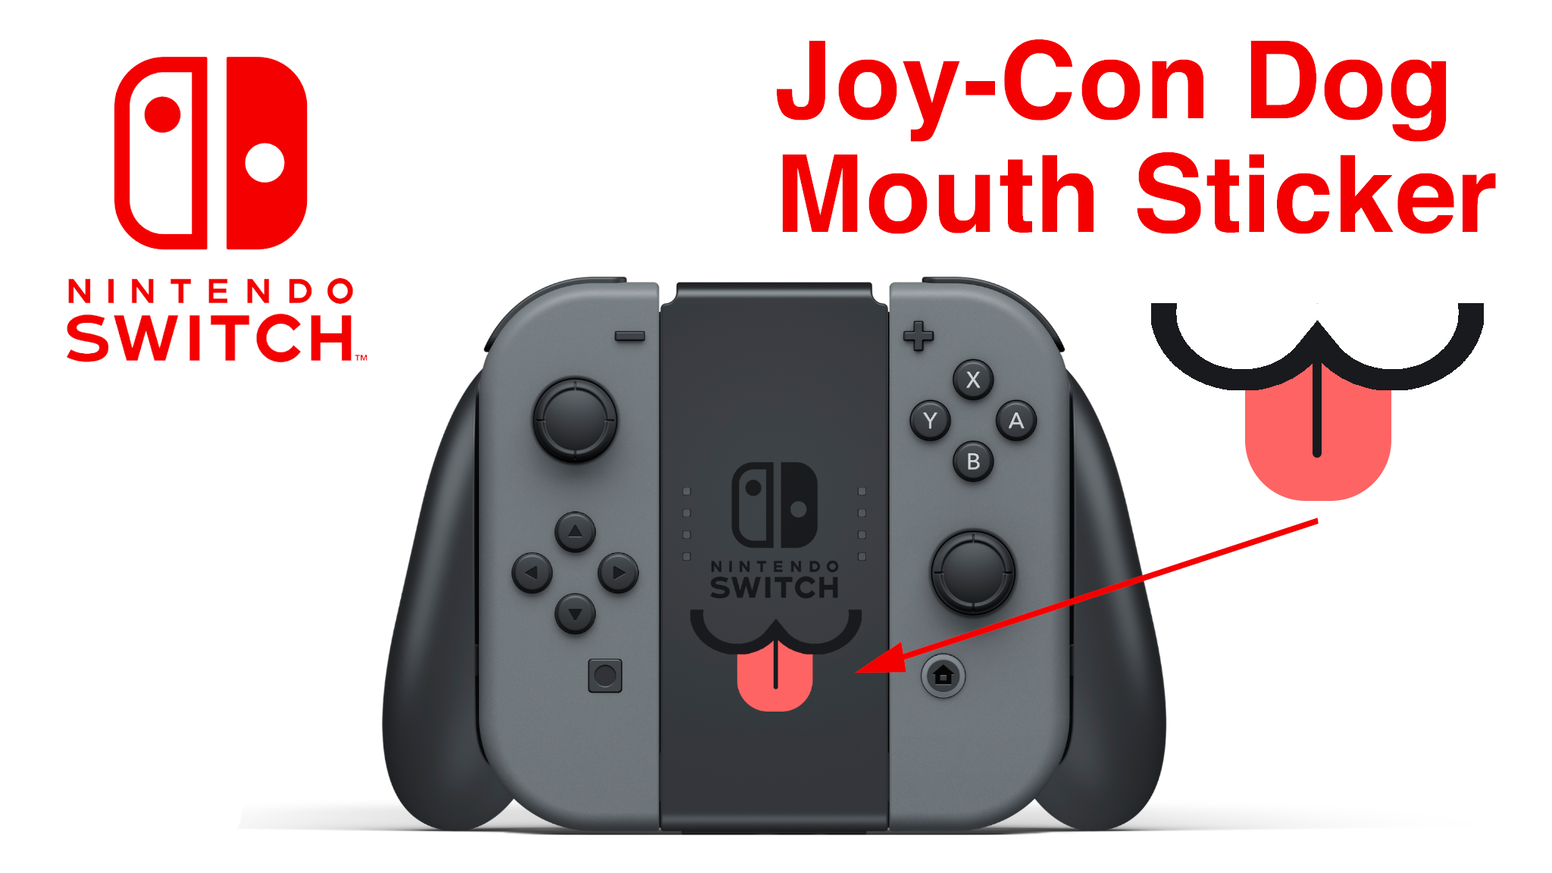 A simple sticker for the Nintendo Switch Joy-Con to make it look even more like a derpy dog. After funding we were able to launch an Etsy store to continue selling. Click the button below to buy your own!